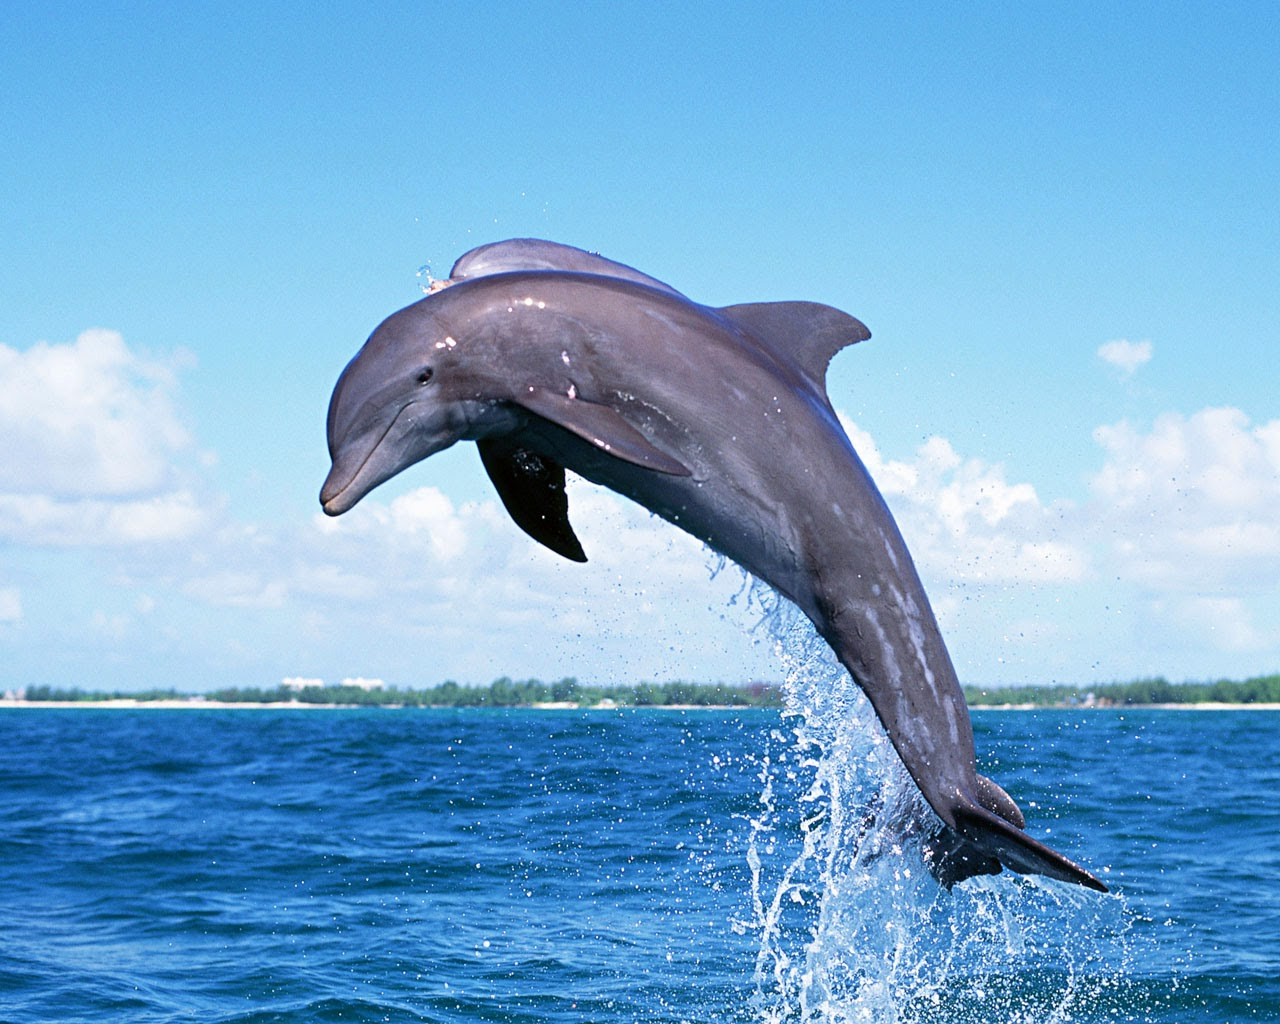 http://beautifulwallpapersfordesktop.blogspot.com/2014/01/dolphin-wallpapers.html